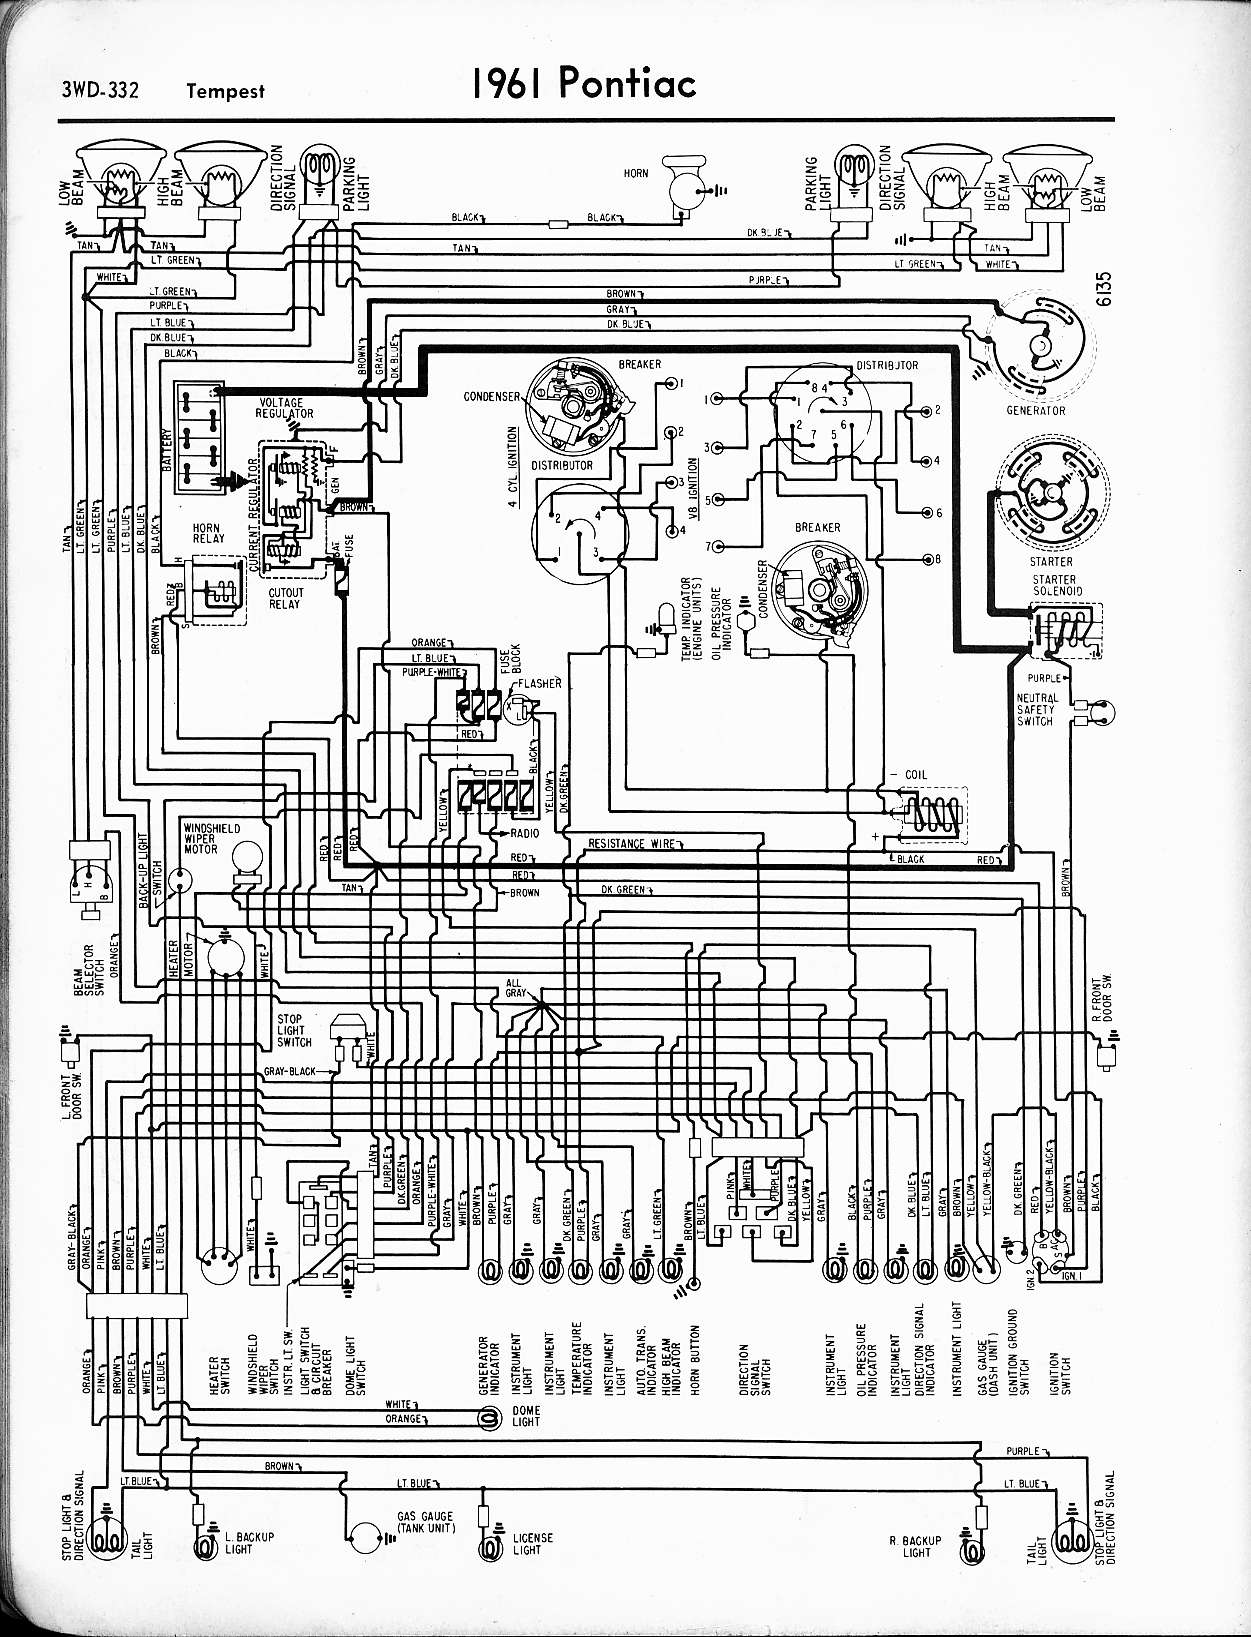 Wiring Diagram For 1965 Plymouth | Wiring Diagram on 1963 falcon speedometer, 1963 falcon exhaust, 1963 falcon brakes, 1963 falcon wheels, 1963 falcon transmission, 1963 falcon battery, 1963 falcon frame, 1963 falcon steering, 1963 falcon ignition coil, 1963 falcon seats, 1963 falcon cylinder head, 1963 falcon suspension, 1963 falcon radio, 1963 falcon distributor, 1963 falcon fuel pump, 1963 falcon brochure, 1963 falcon ford, 1963 falcon specifications, 1963 falcon engine, 1963 falcon radiator,